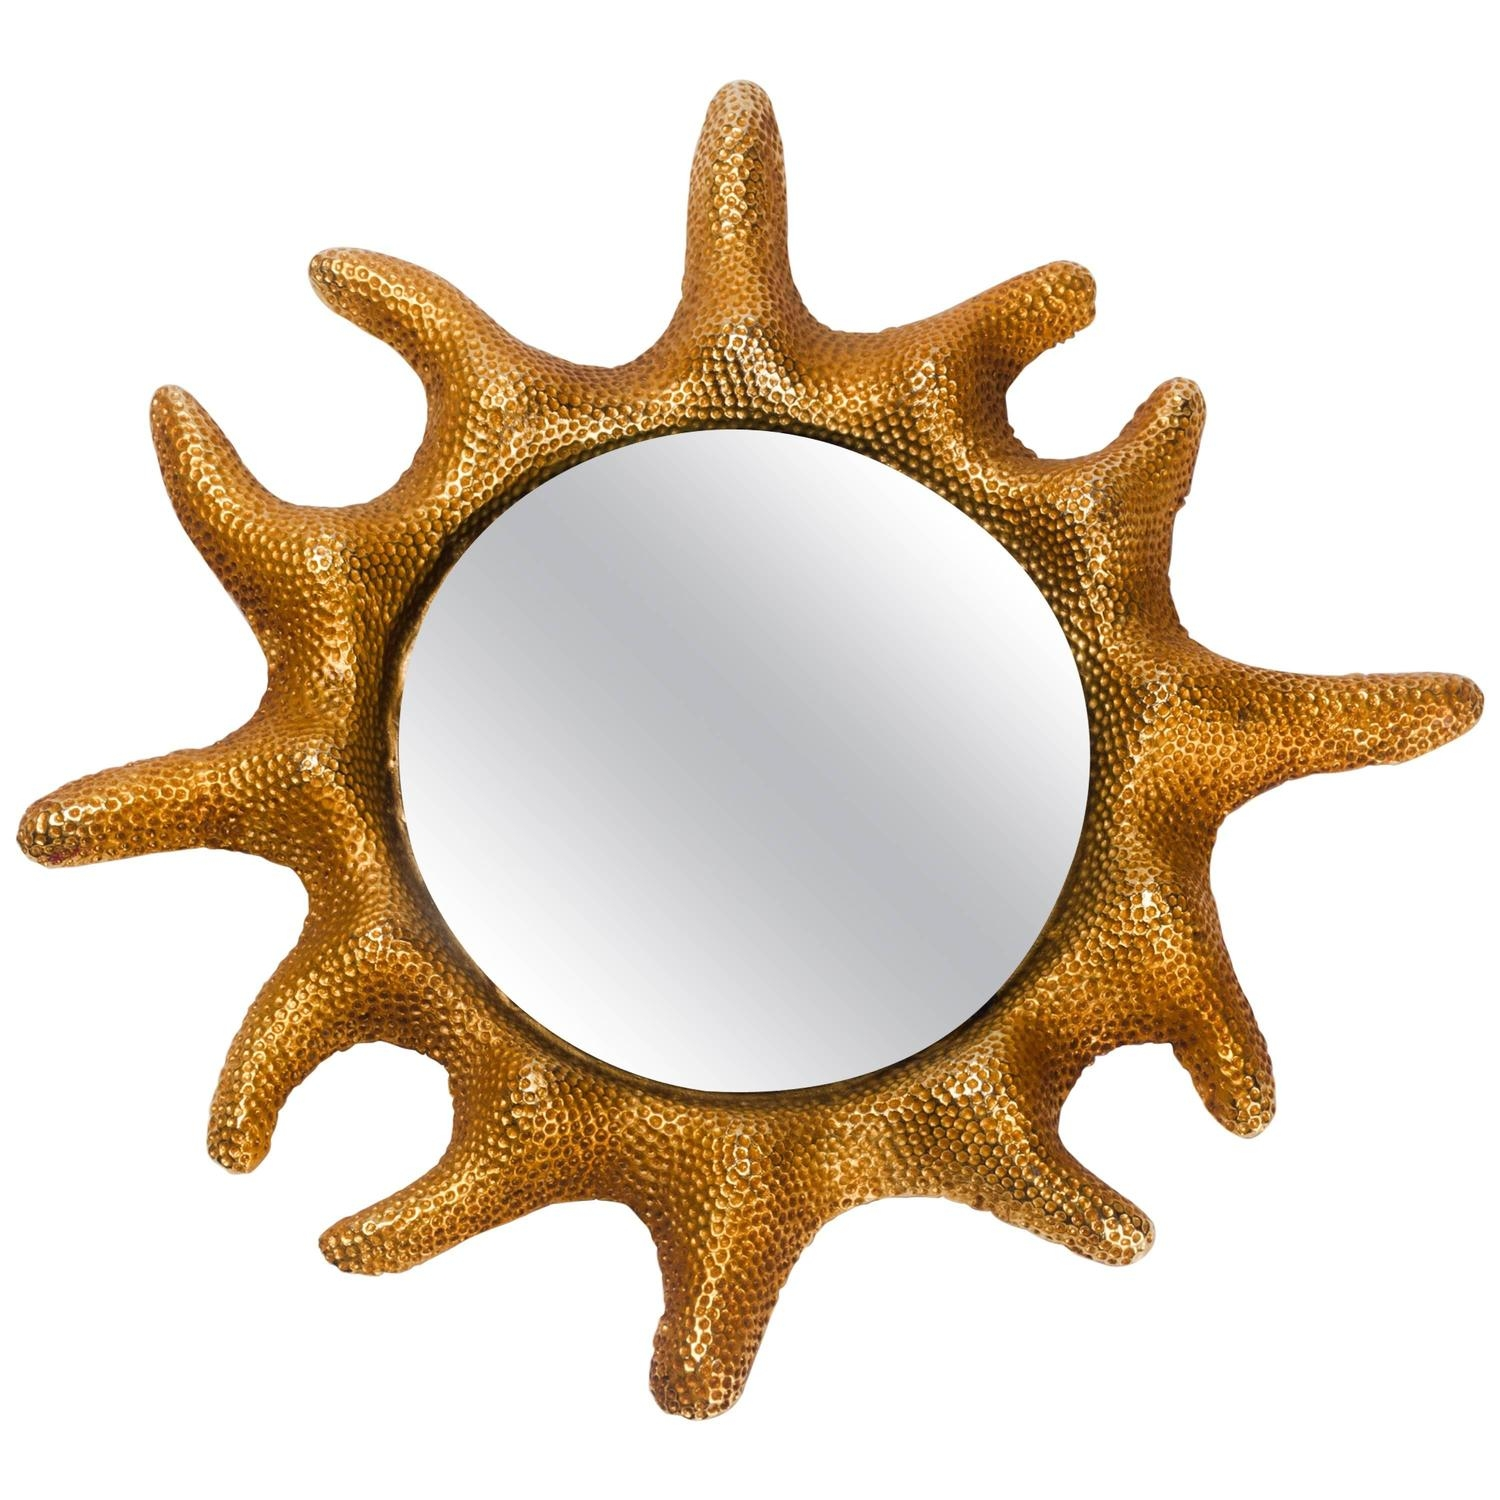 Antique And Vintage Sunburst Mirrors 524 For Sale At 1stdibs Throughout Rococo Mirror Cheap (View 2 of 15)